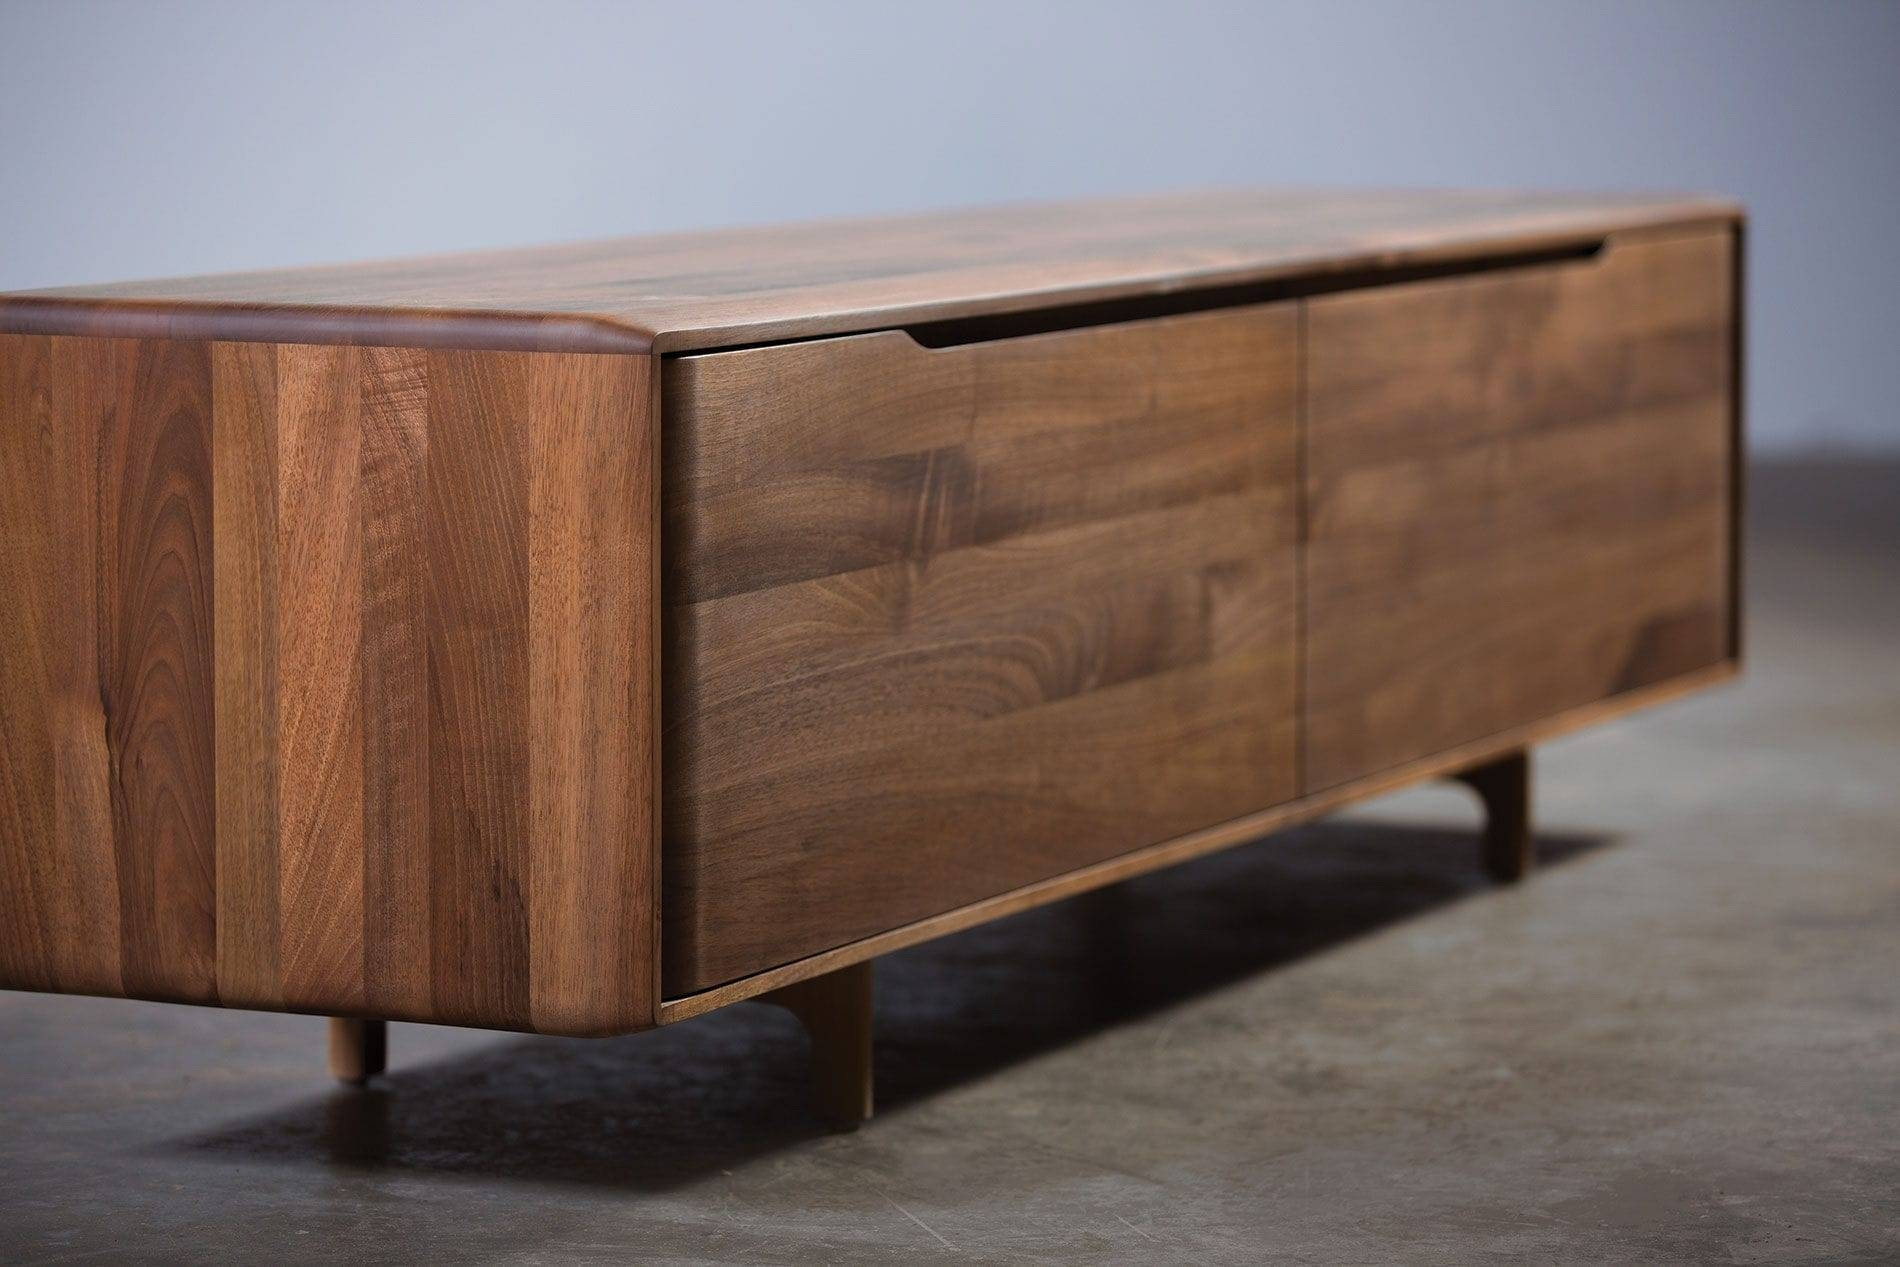 Contemporary Sideboard / Oak / Walnut / Solid Wood – Invito Regarding Small Dark Wood Sideboard (#2 of 20)